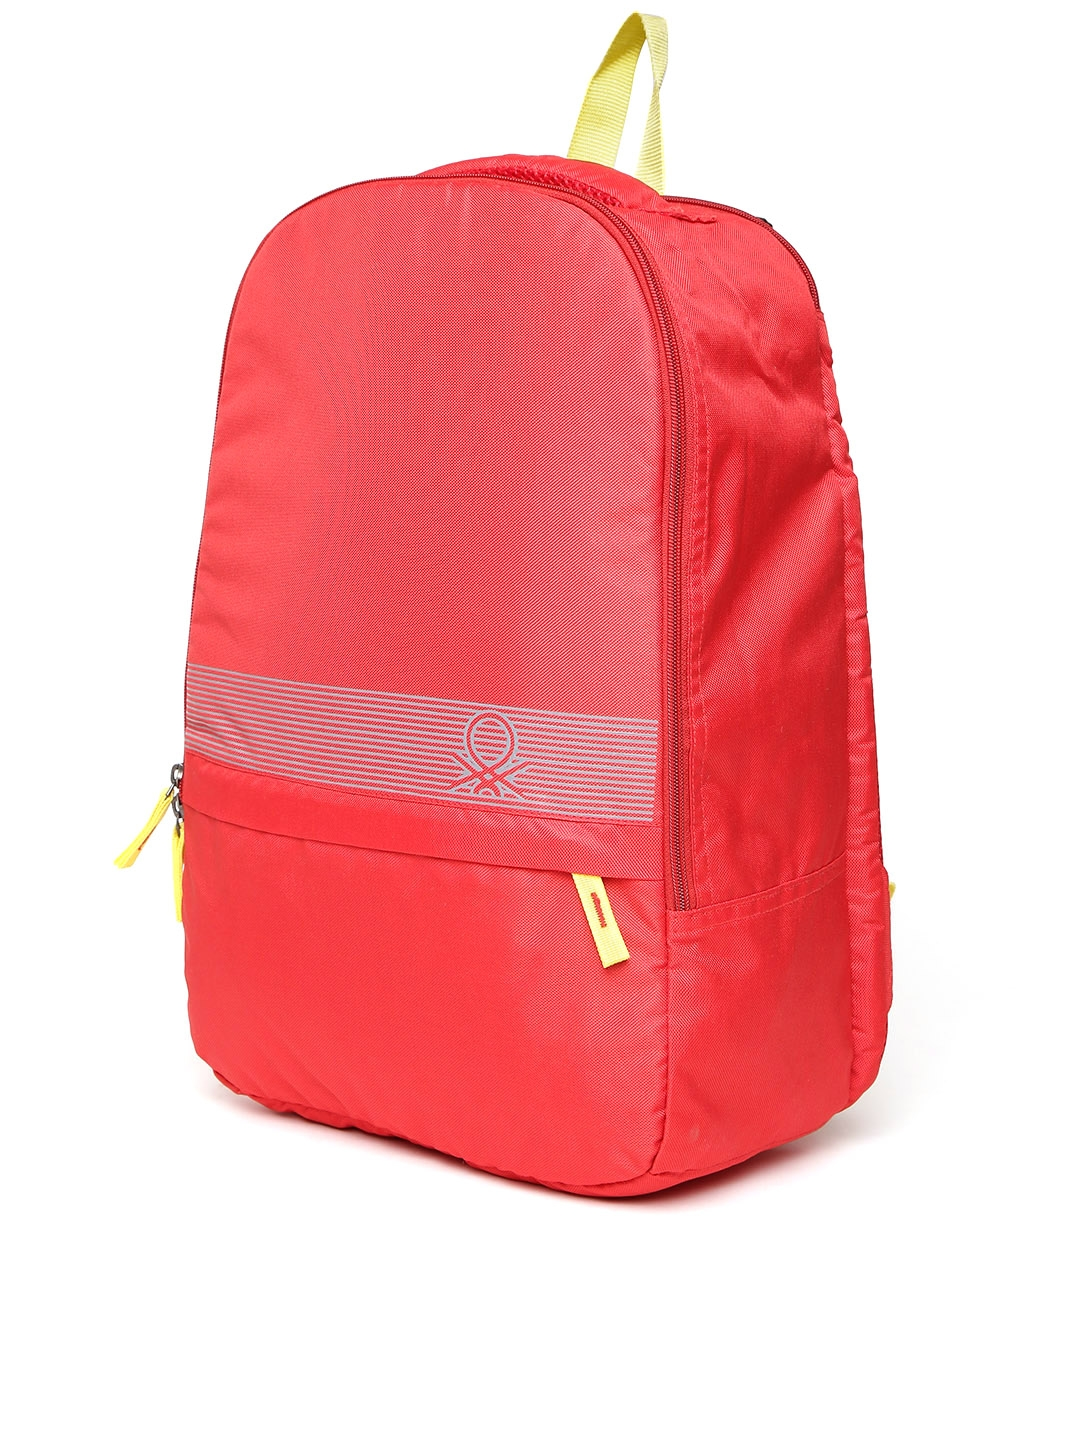 77eaf26e65 Buy United Colors Of Benetton Men Red Printed Detail Backpack ...